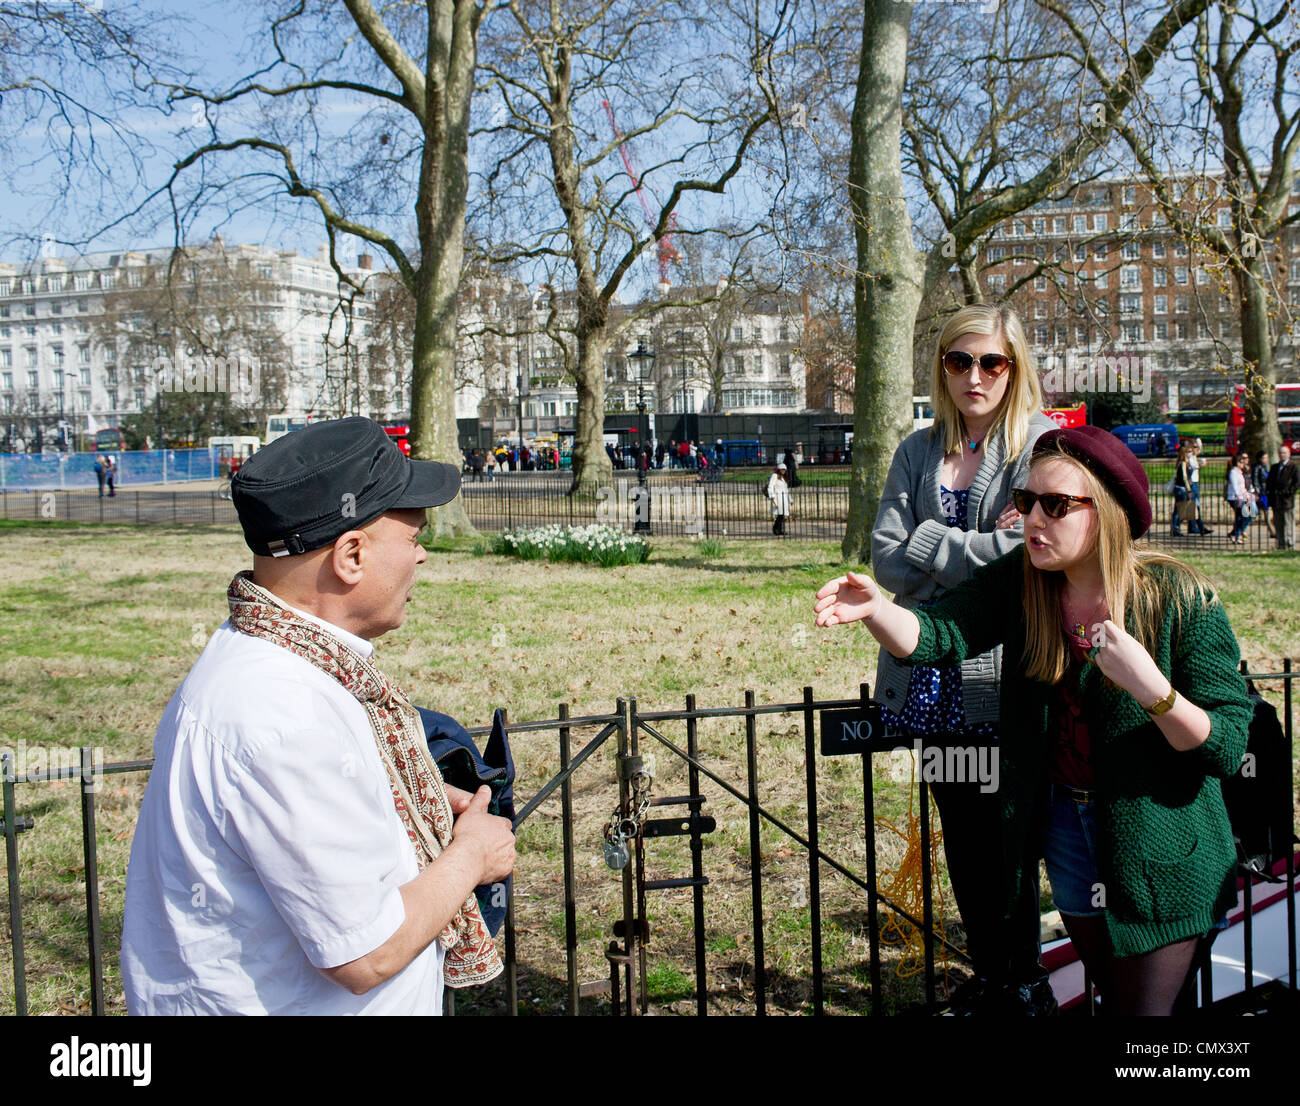 An argument at Speakers Corner in London. - Stock Image